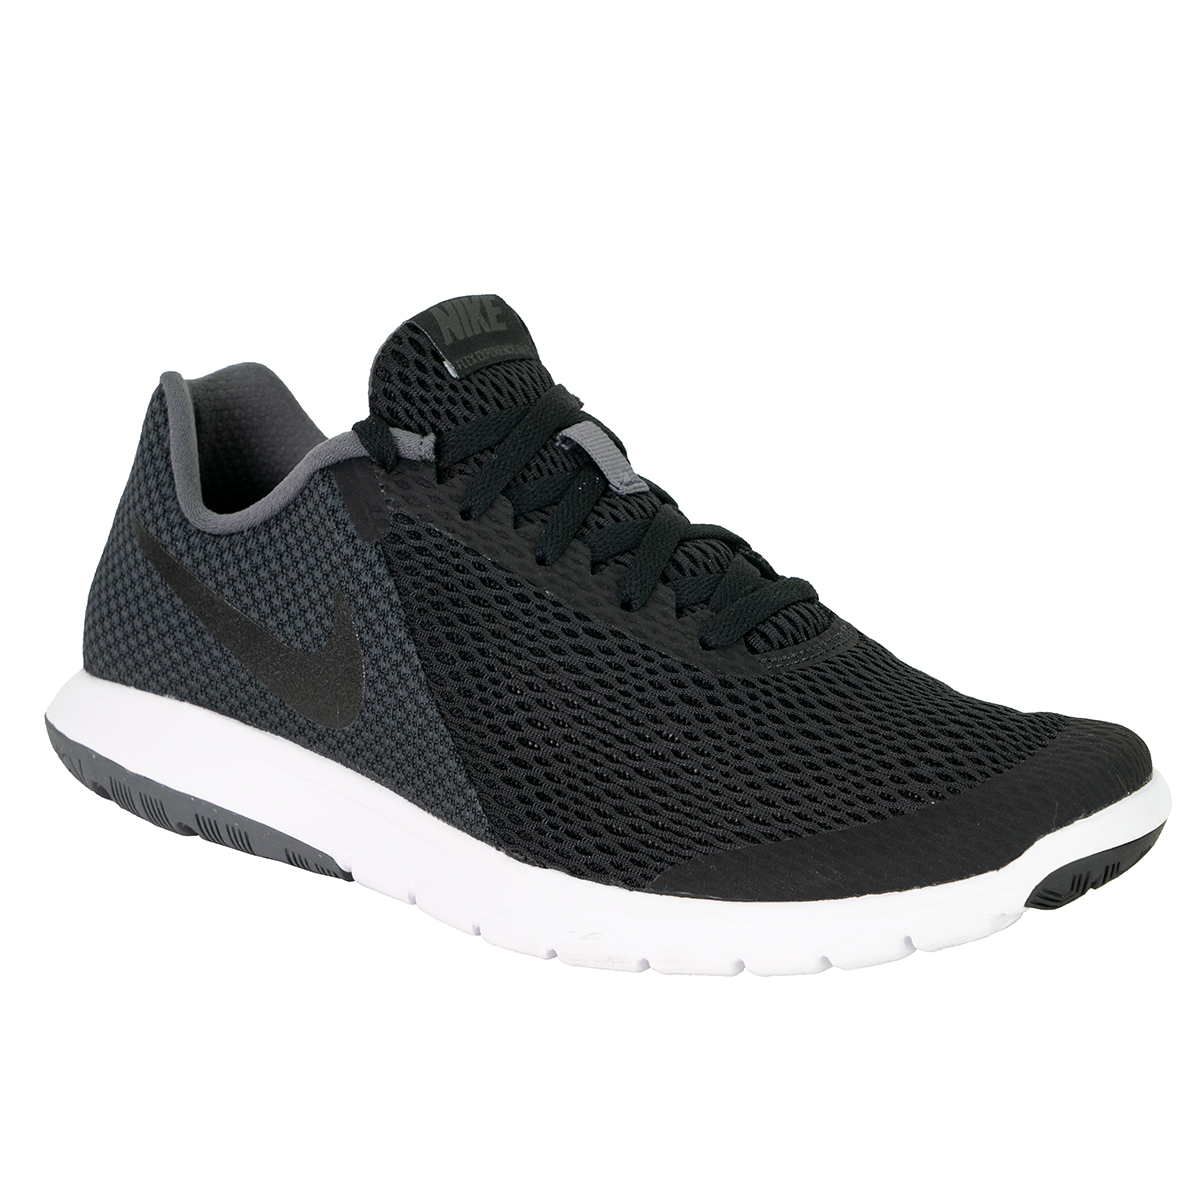 Nike Men s Flex Experience Run 6 Running Shoes Black 7 883212140913 ... eb7364bd5